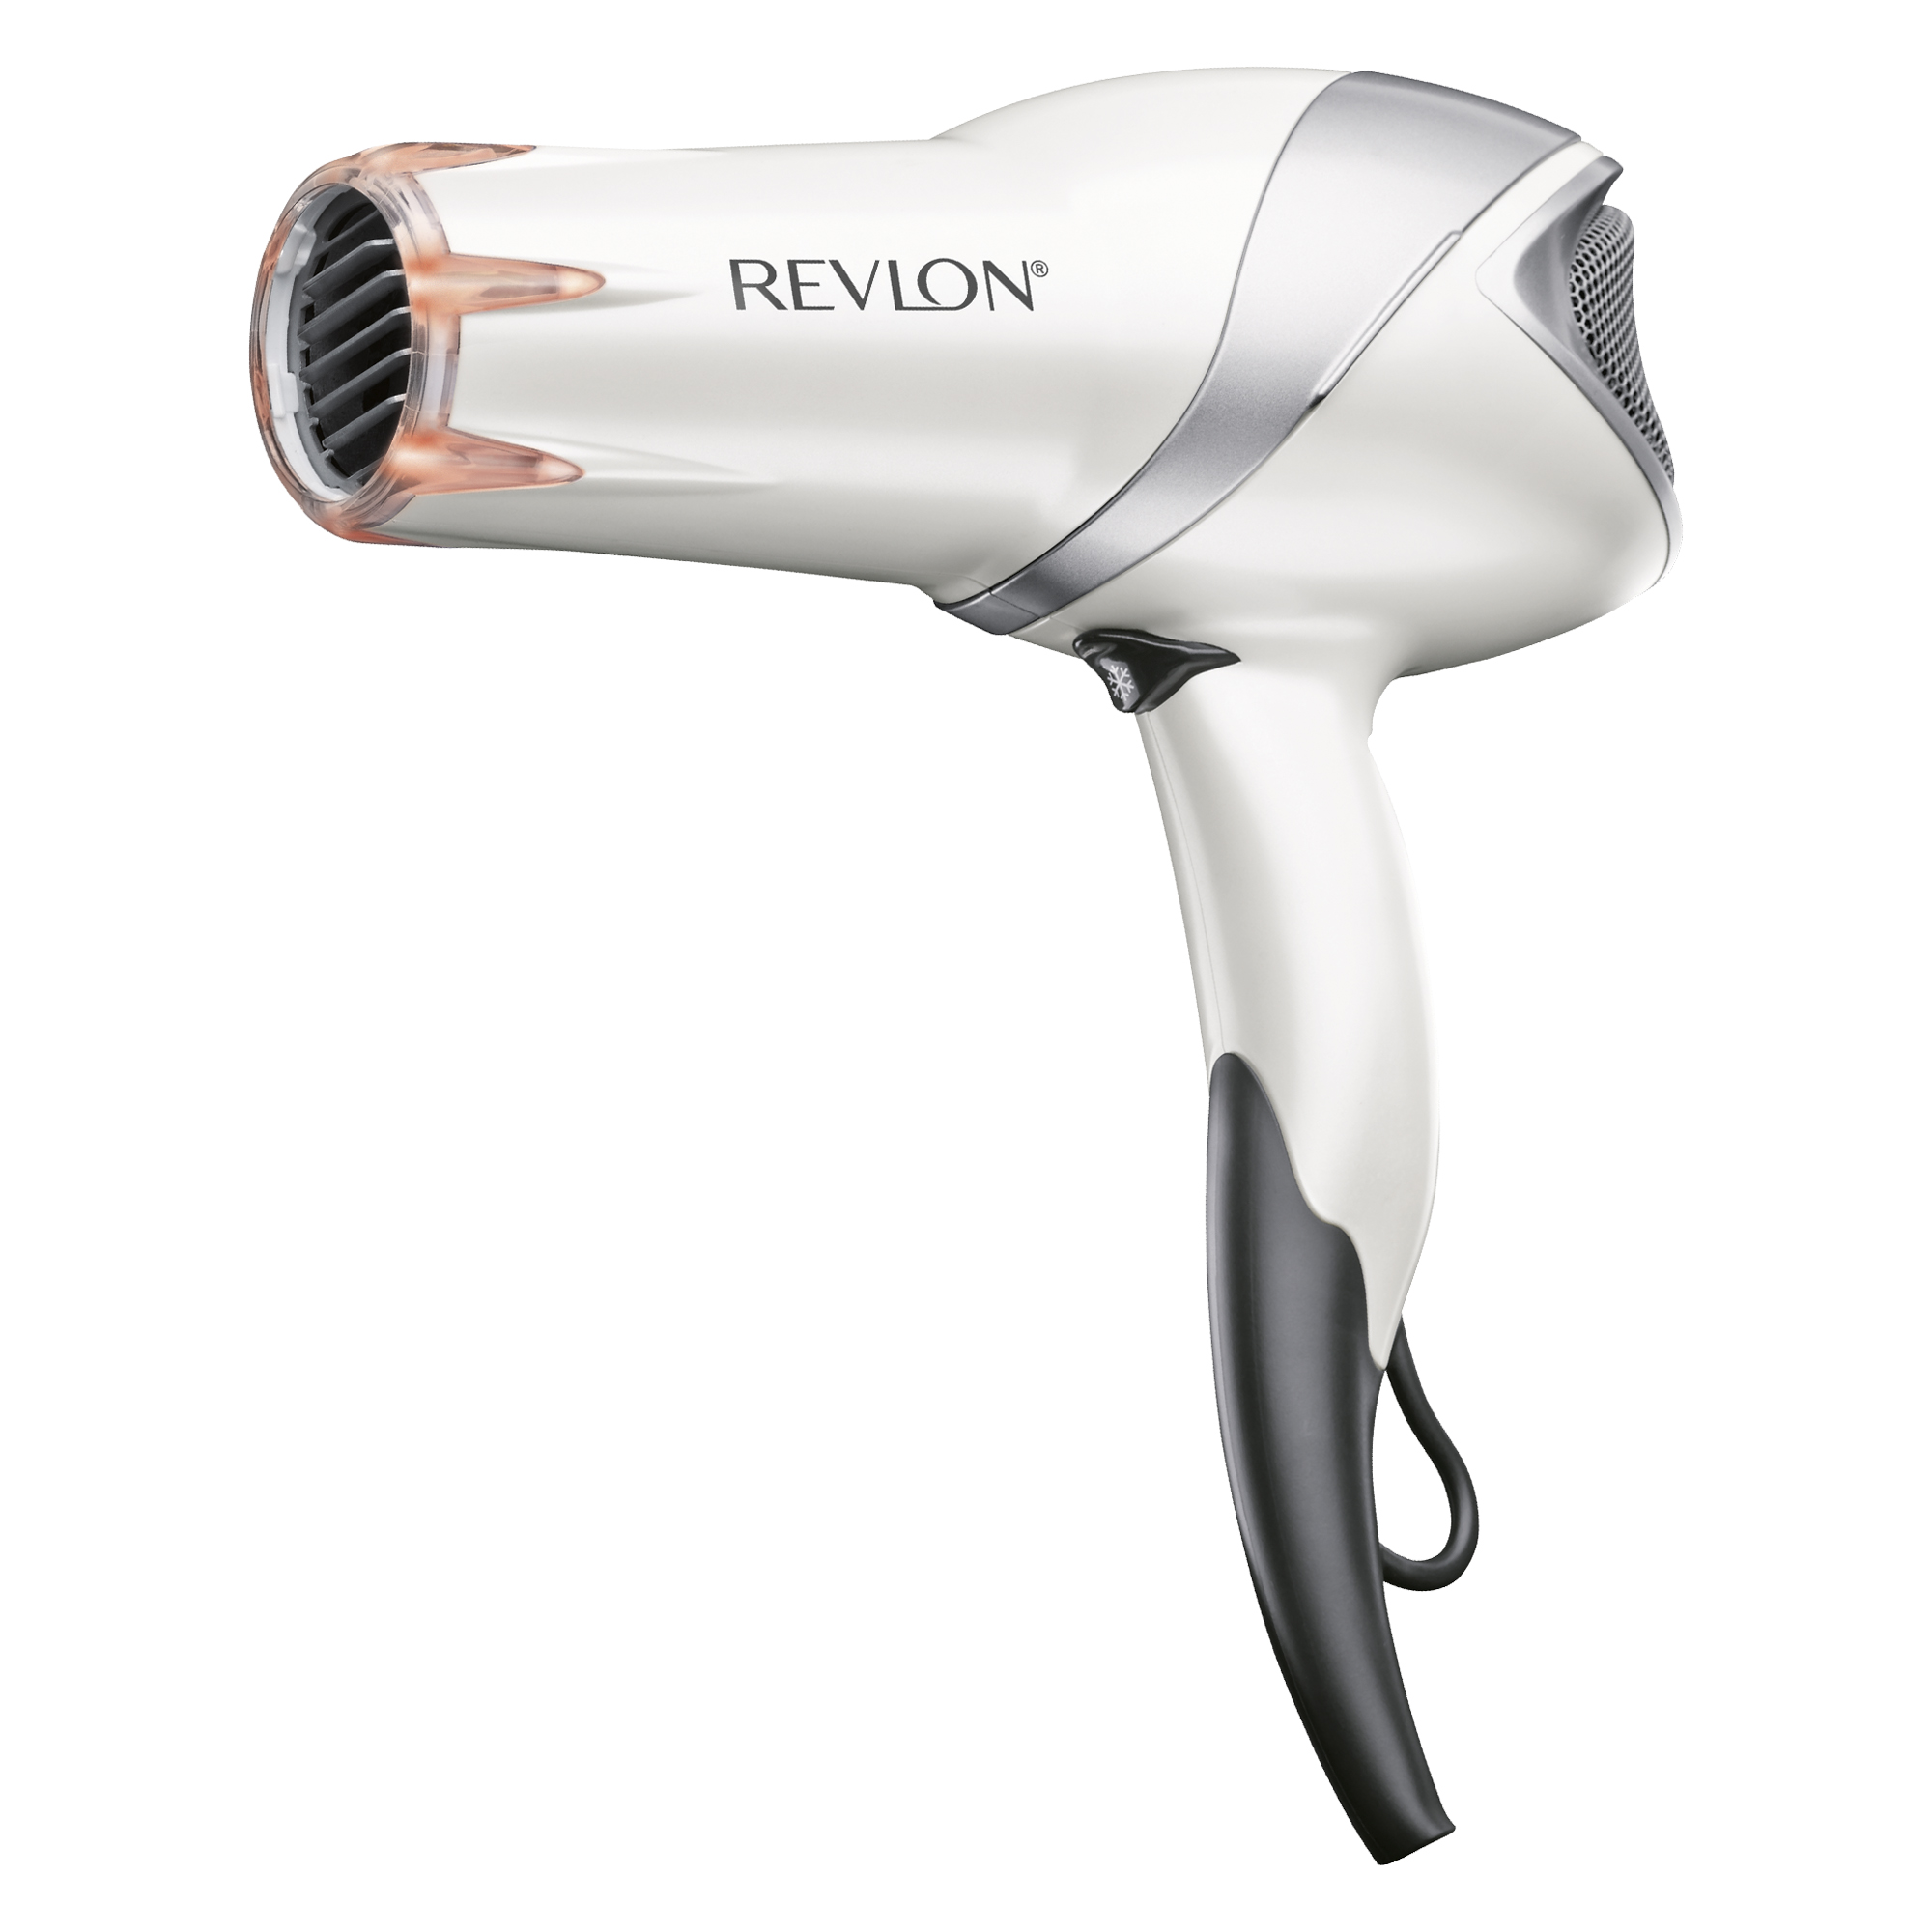 revlon fast style shine rvdr5105 1875w infrared hair dryer